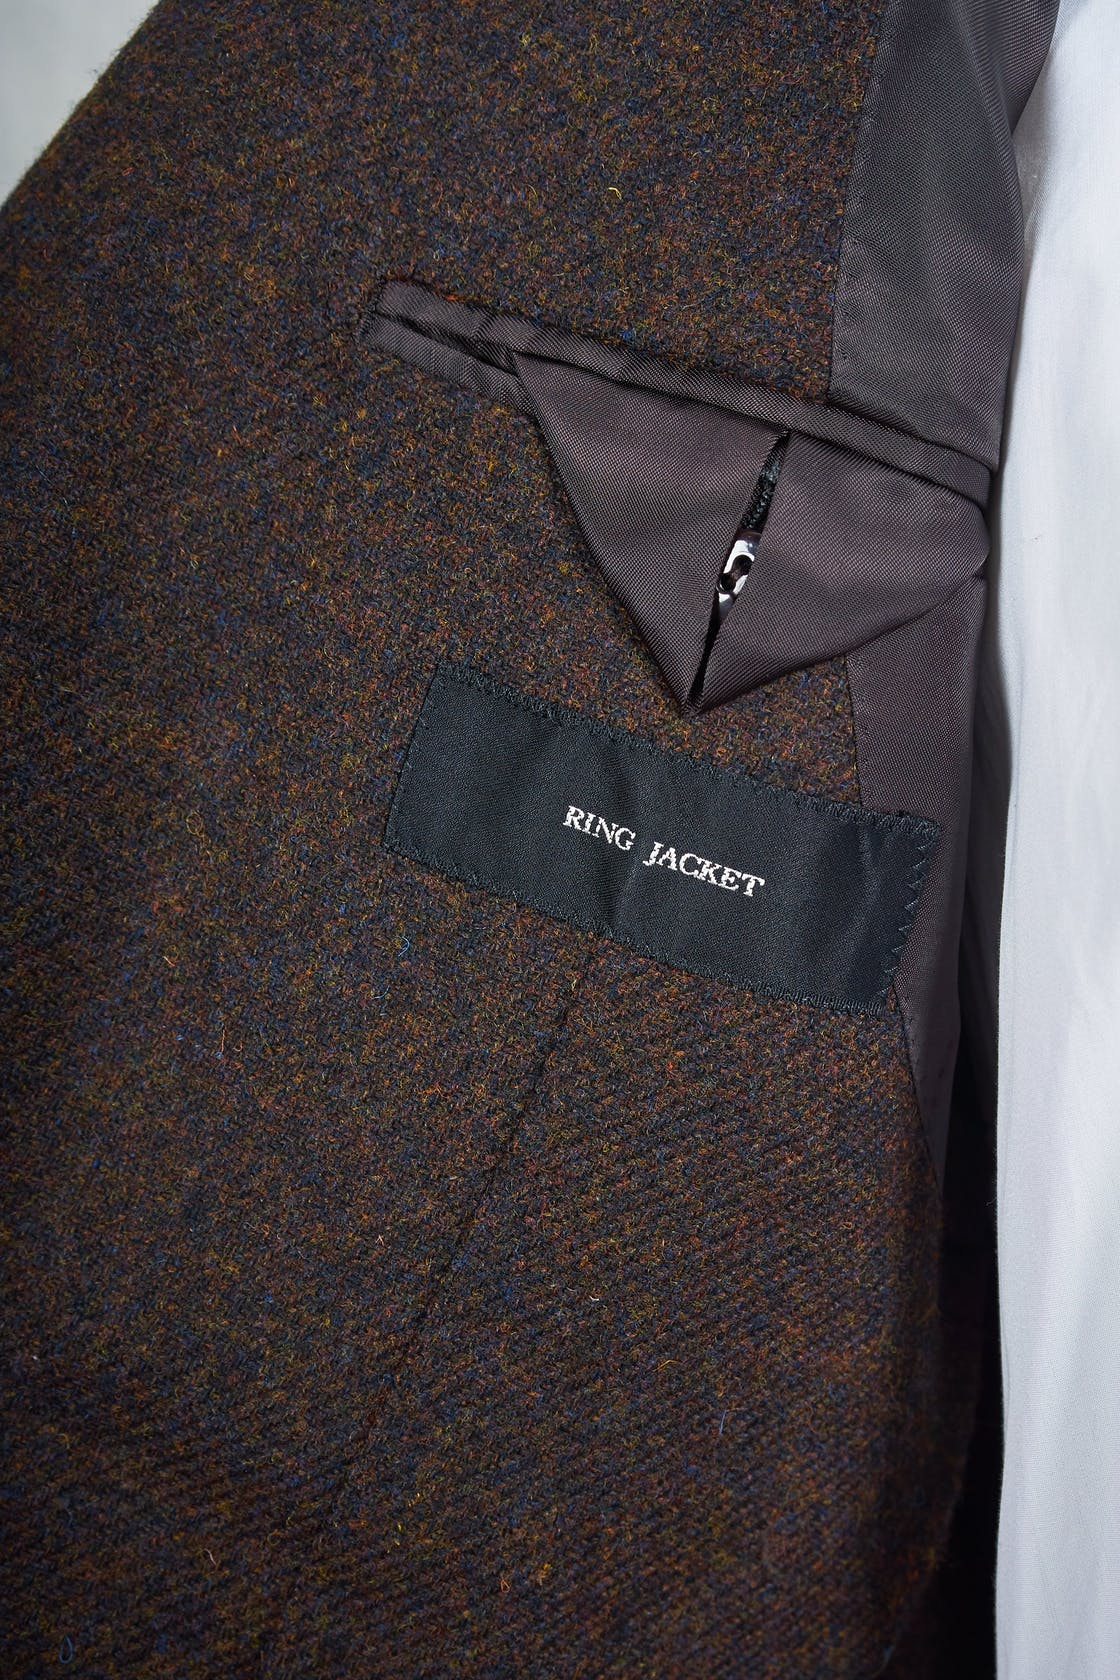 Ring Jacket AMJ03 Dark Brown Moon Wool Sport Coat